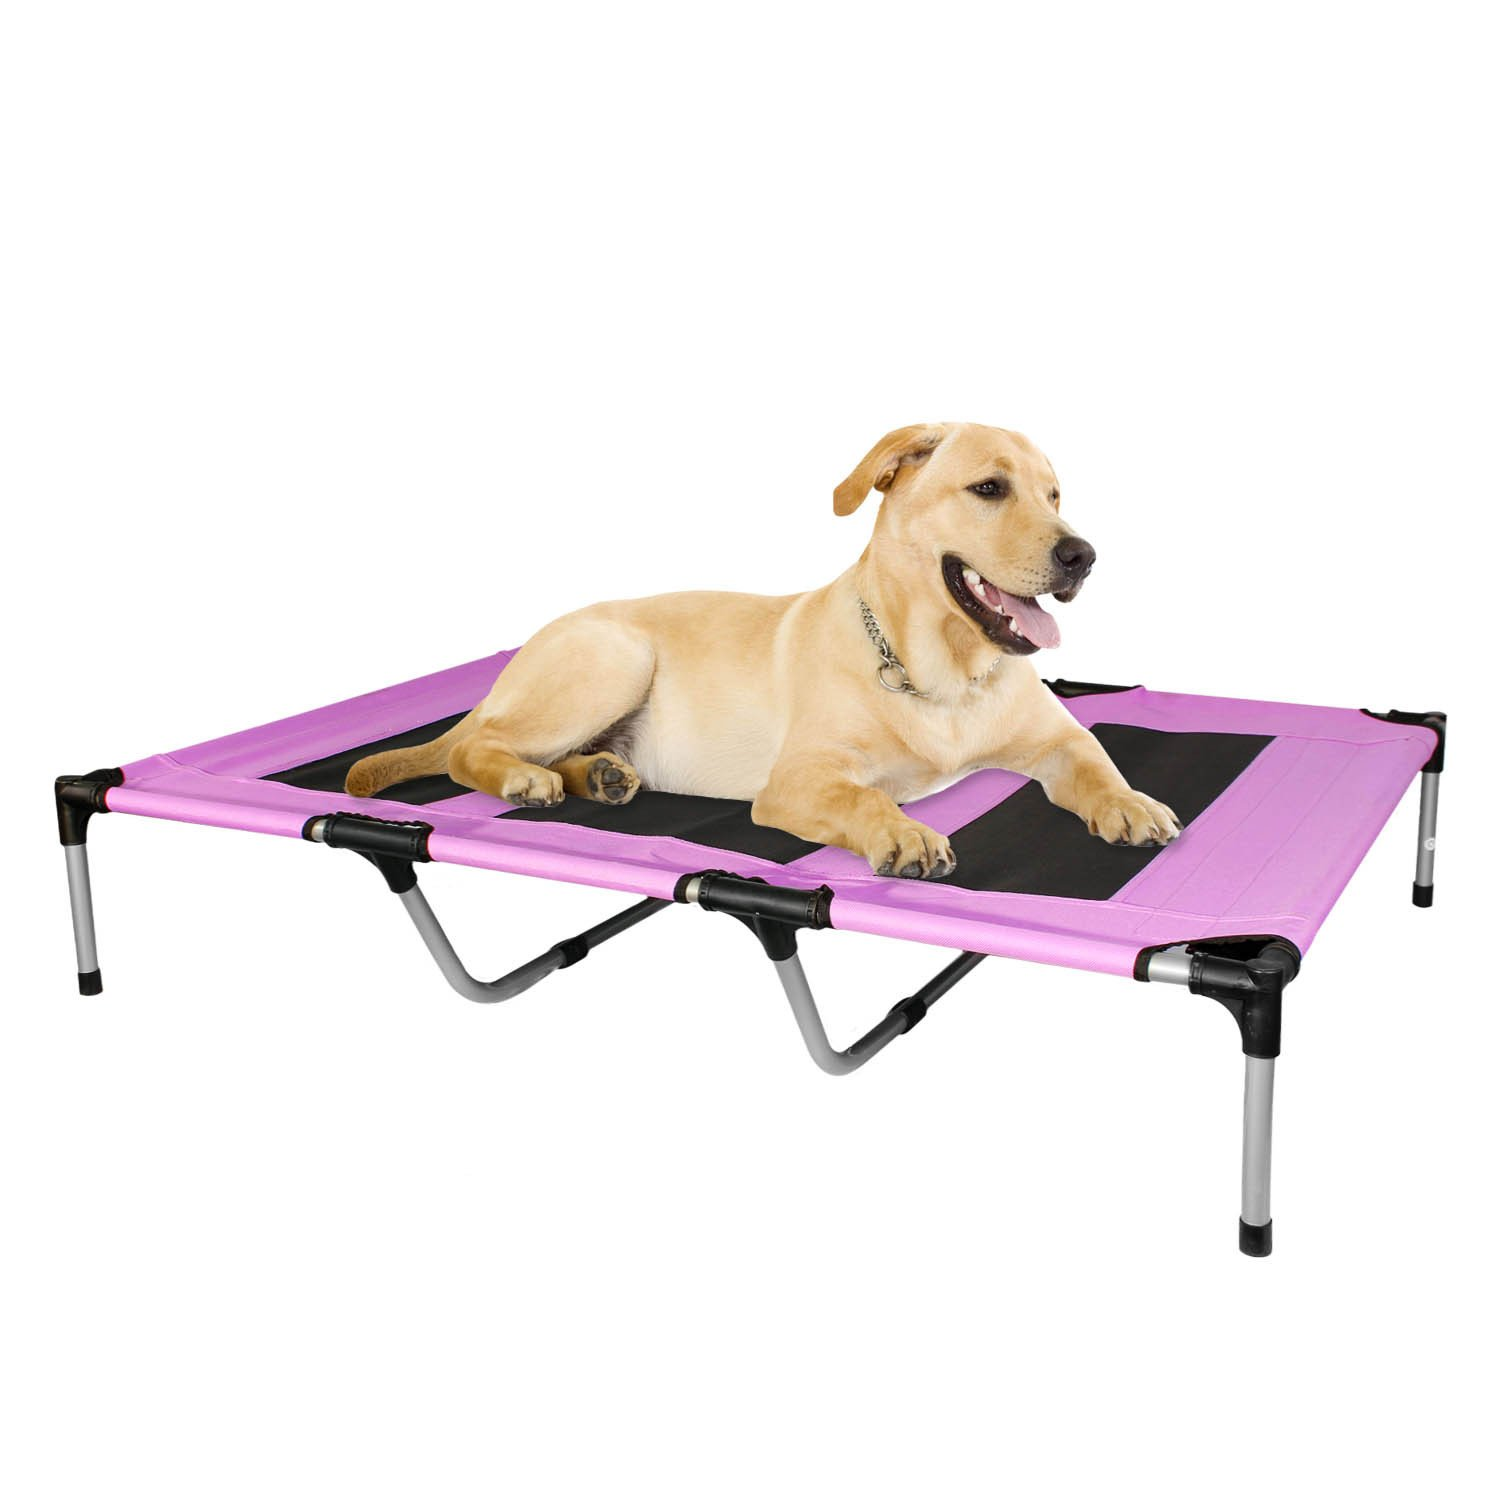 Kopeks - Elevated Indoor Outdoor Portable Bed - Extra Large Size Pink Color by KOPEKS (Image #1)